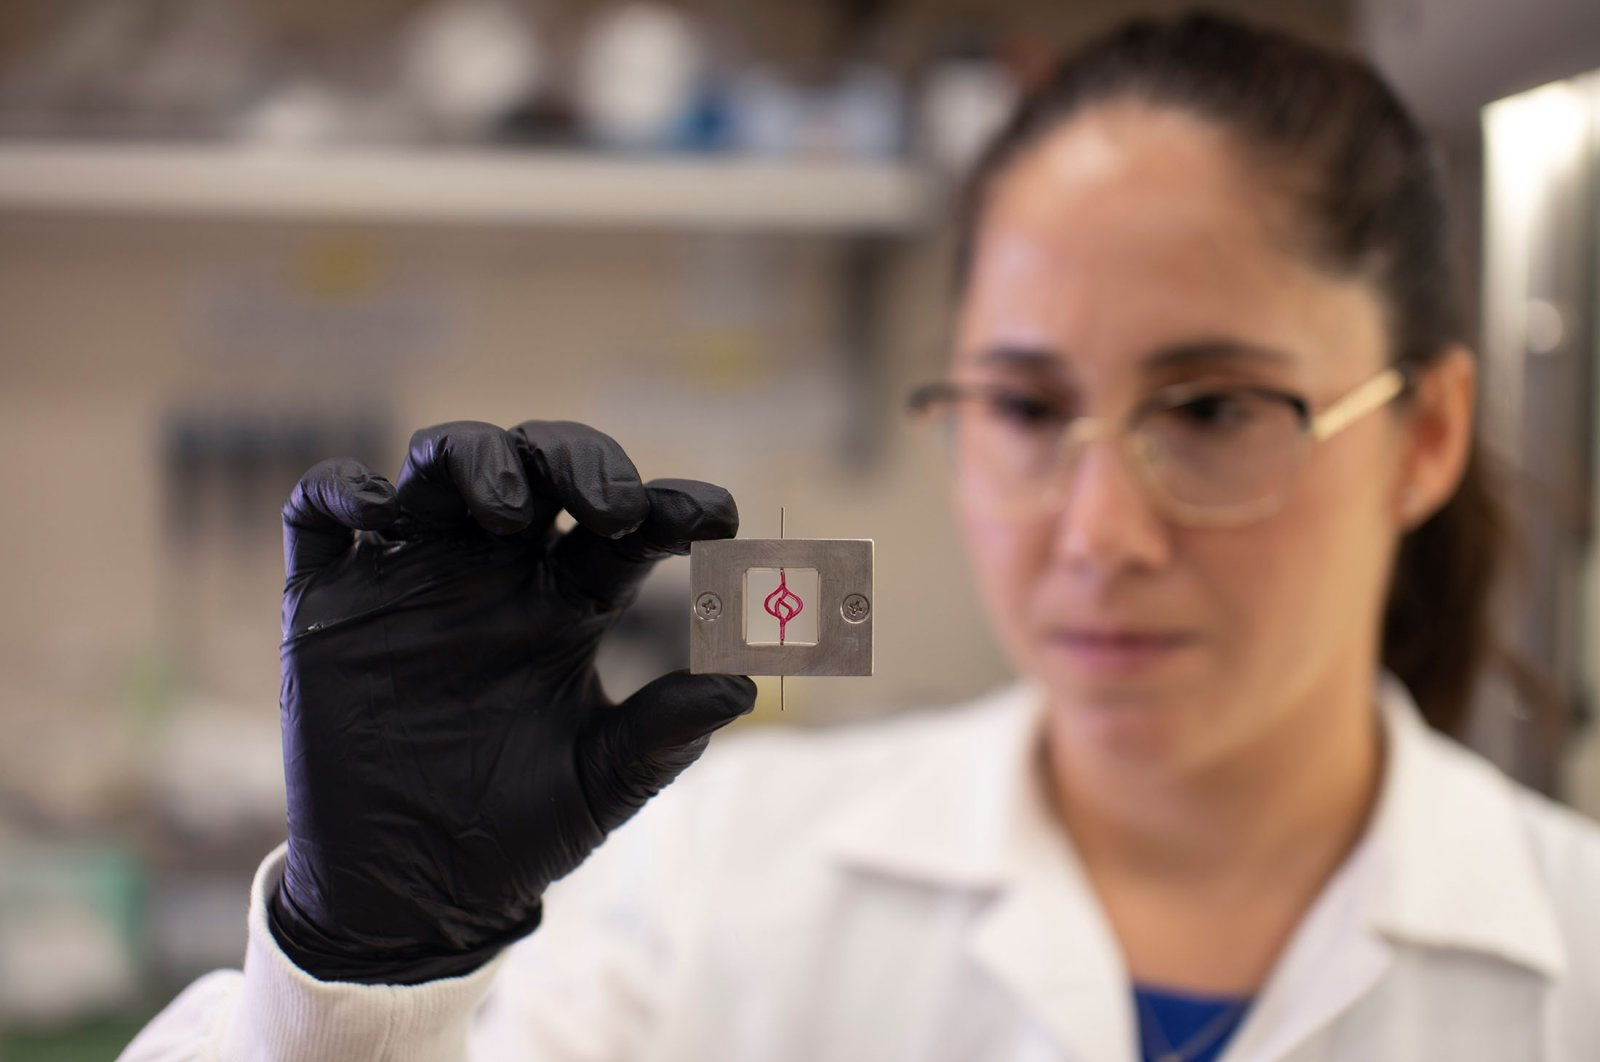 Israeli researcher Lena Neufeld examines a 3D model of a blood vessel-like tube, as part of brain cancer research that uses patients' cells to make 3D printed models of tumors, at Tel Aviv University, Israel, Aug. 17, 2021. (Reuters Photo)